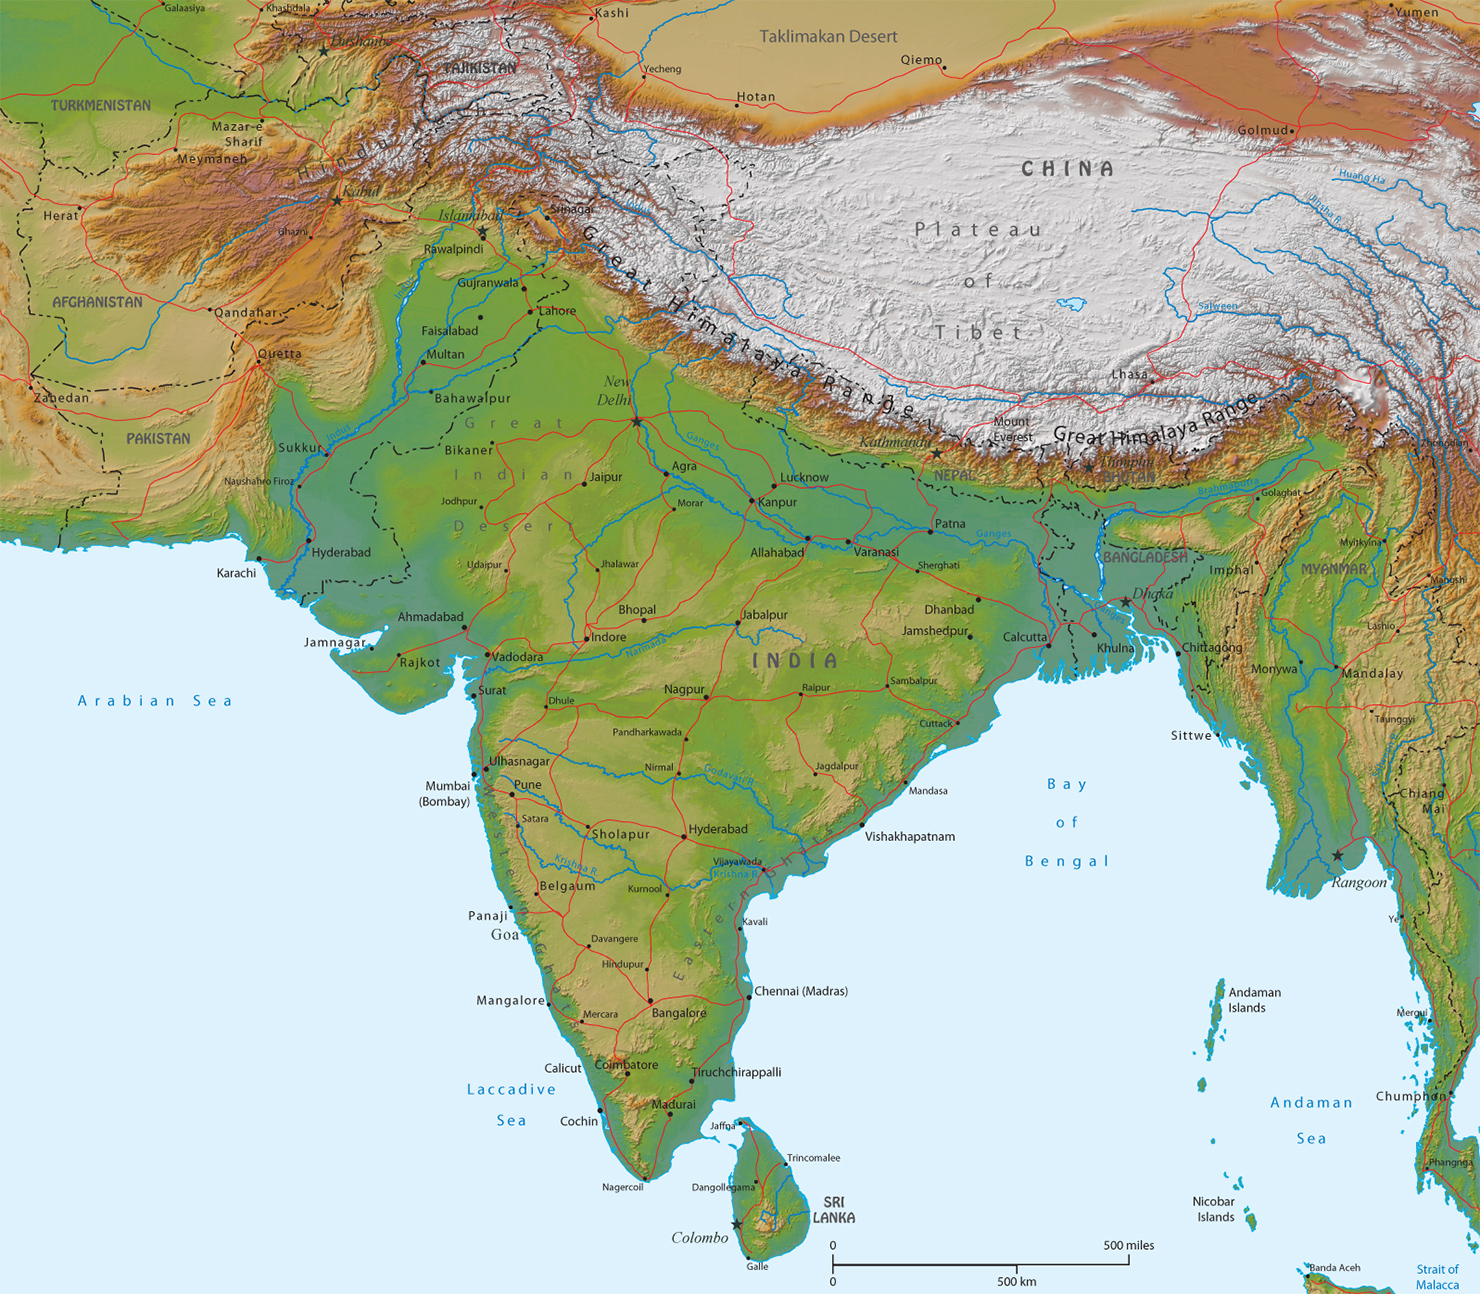 Cartina India In Italiano.Carta Geografica Dell India Mappa Geografica Ad Alta